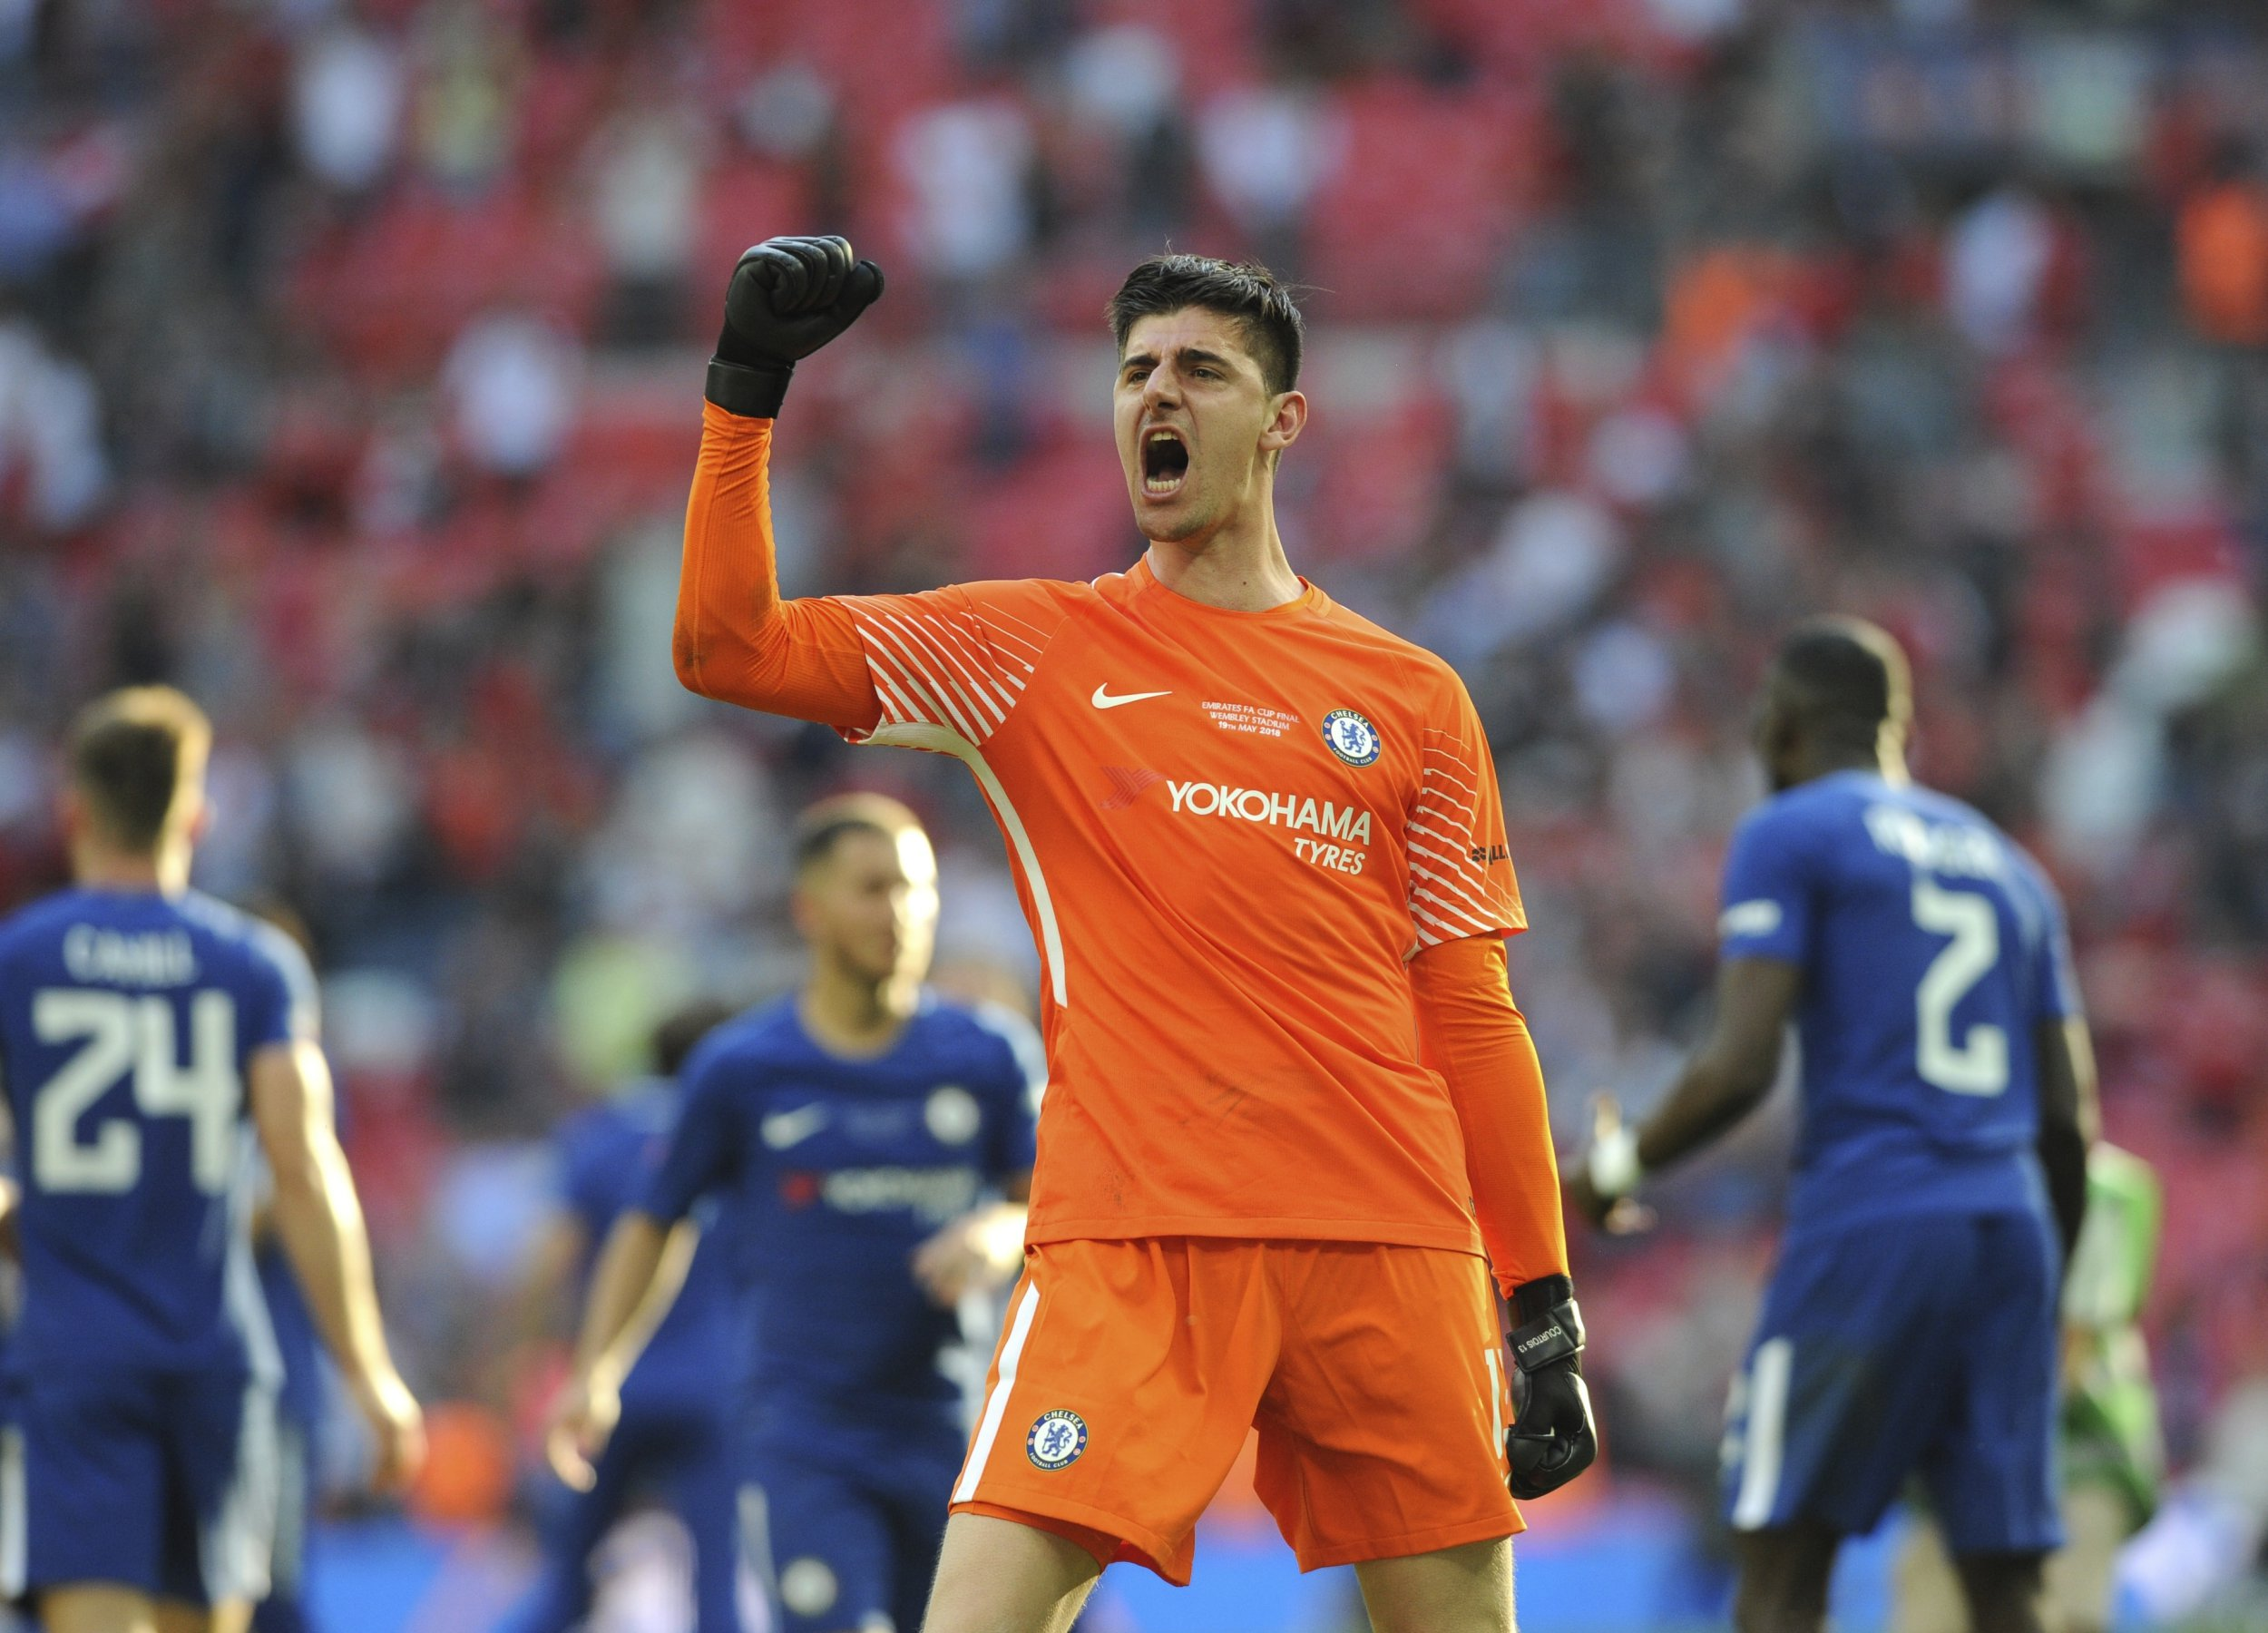 Chelsea's Thibaut Courtois celebrates after winning the English FA Cup final soccer match between Chelsea v Manchester United at Wembley stadium in London, England, Saturday, May 19, 2018. (AP Photo/Rui Vieira)